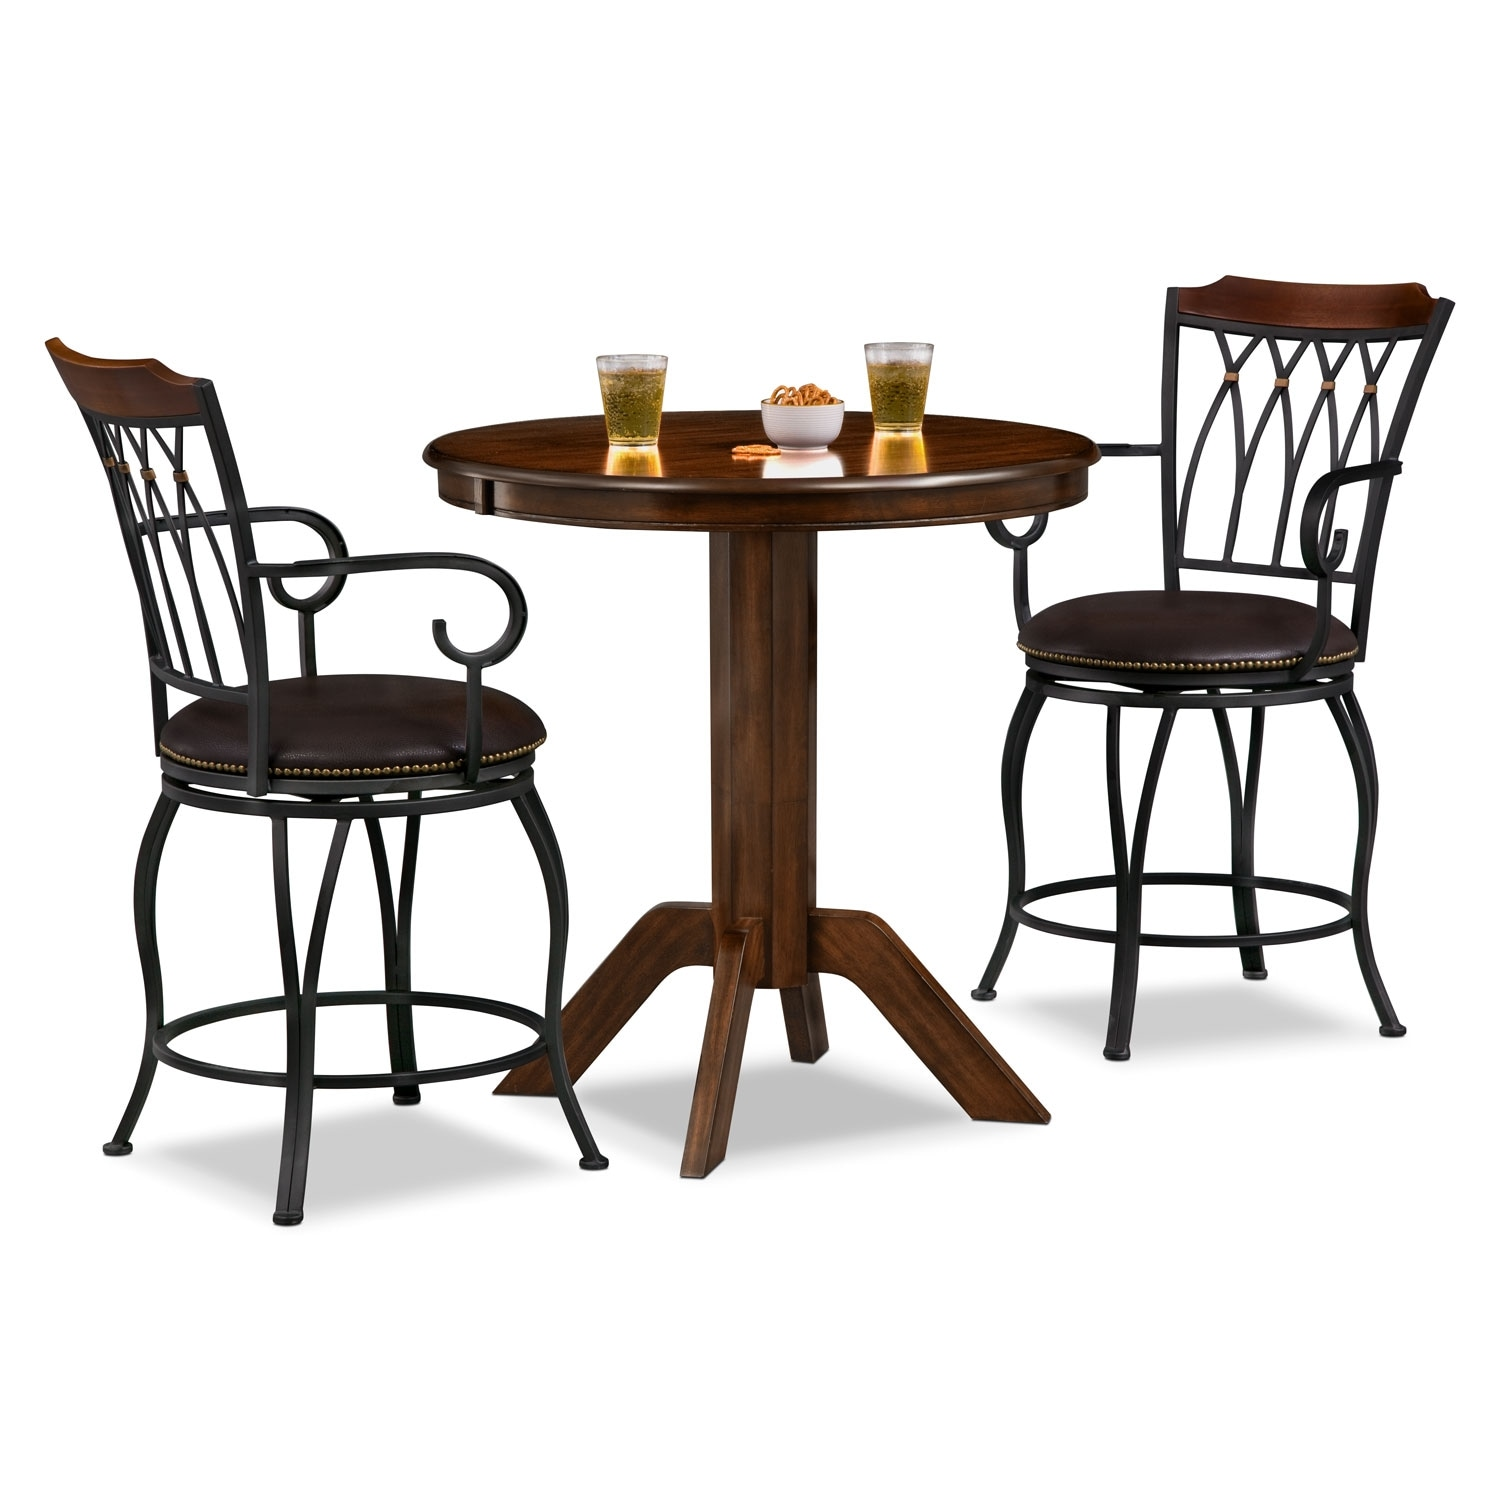 welch porter 3 pc counter height dinette